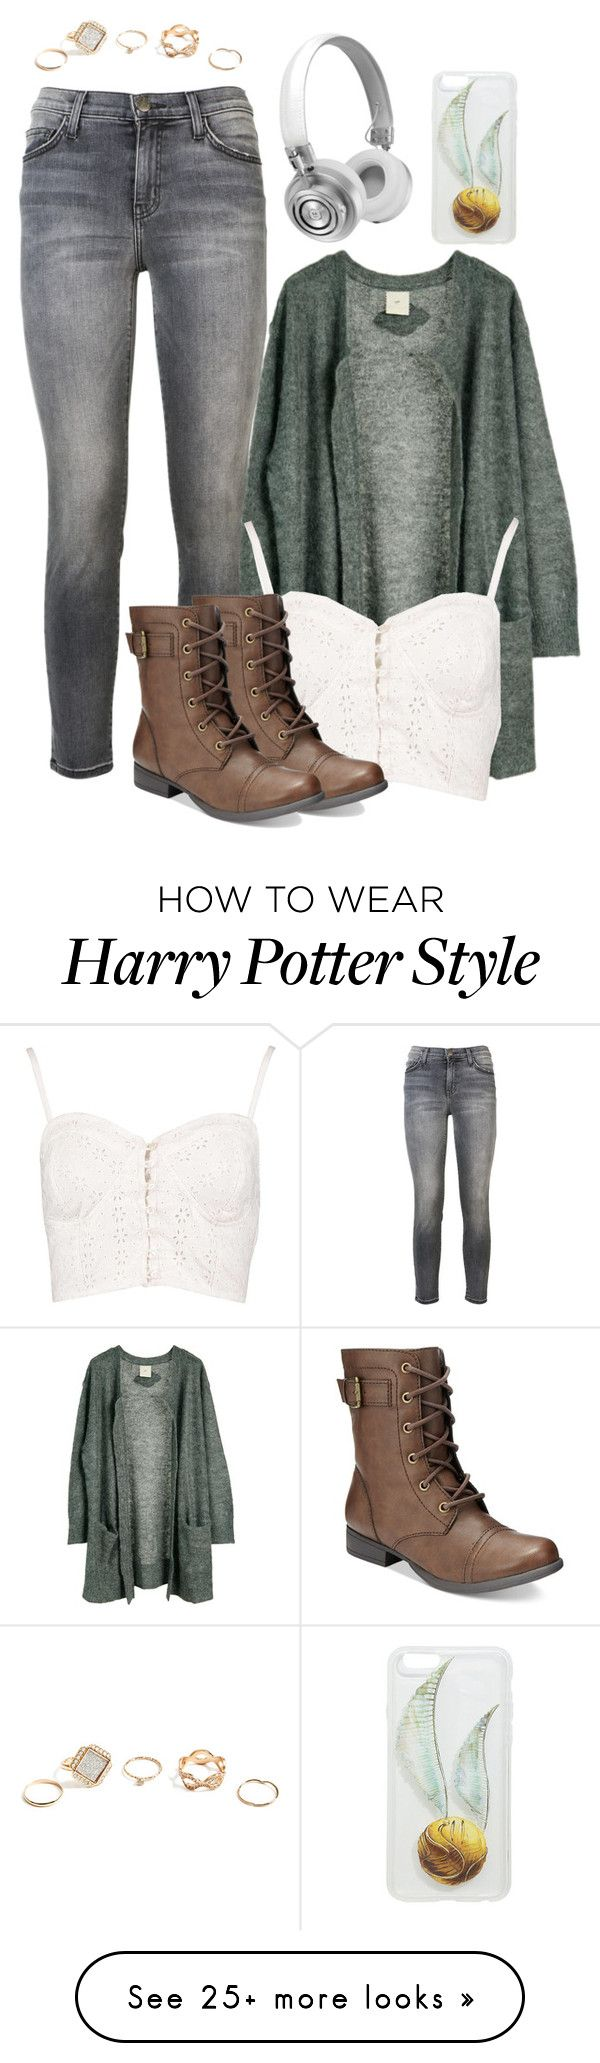 """Out"" by goldengryffindorgal on Polyvore featuring Current/Elliott, Julie Fagerholt Heartmade, Boohoo, American Rag Cie, GUESS and Master & Dynamic"